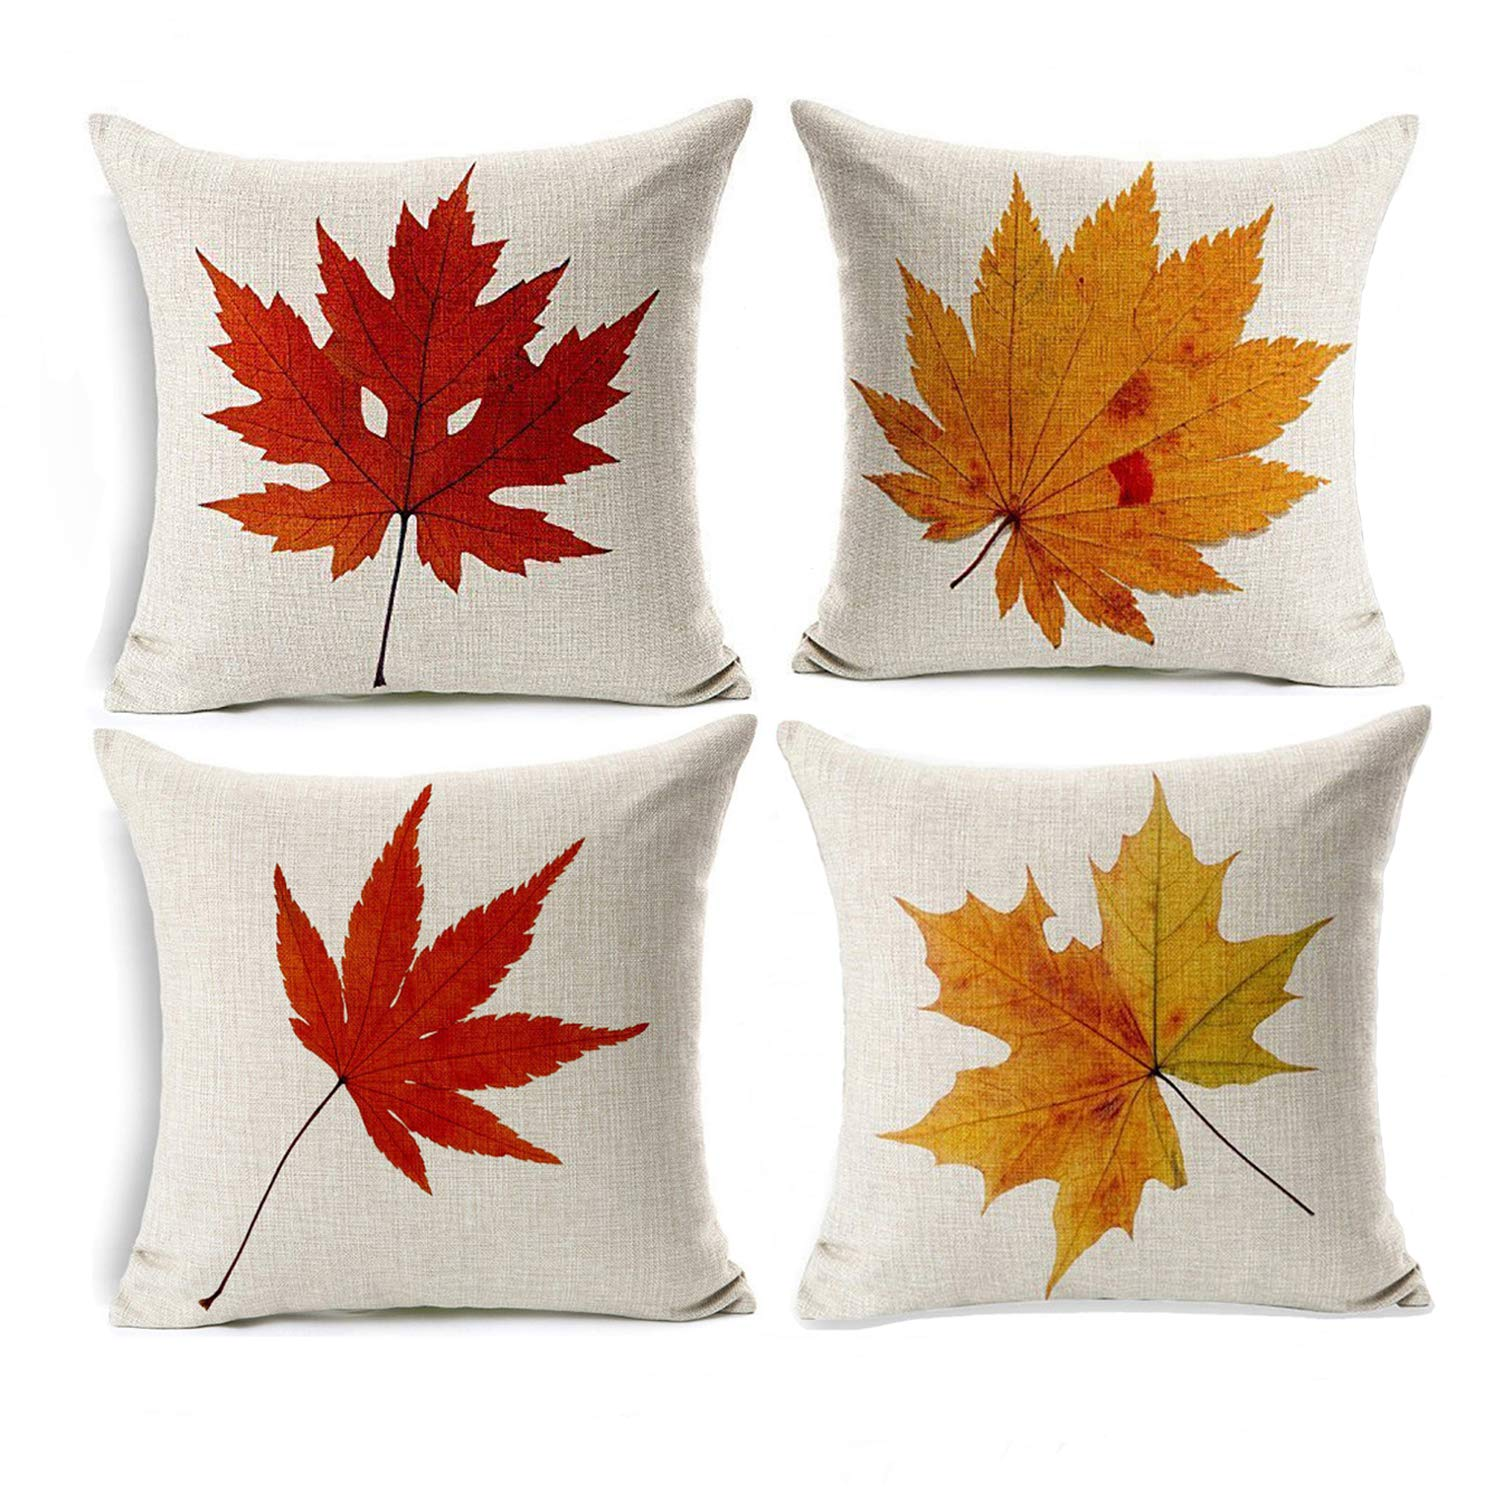 Wonder4 Maple Leaf Throw Pillow Covers Autumn Theme Fall Decorative Pillow Covers Cushion Cases Decor Autumn Leaf Pillow Cases Cotton Linen for Home Sofa Bedding 18x18 inches Set of 4